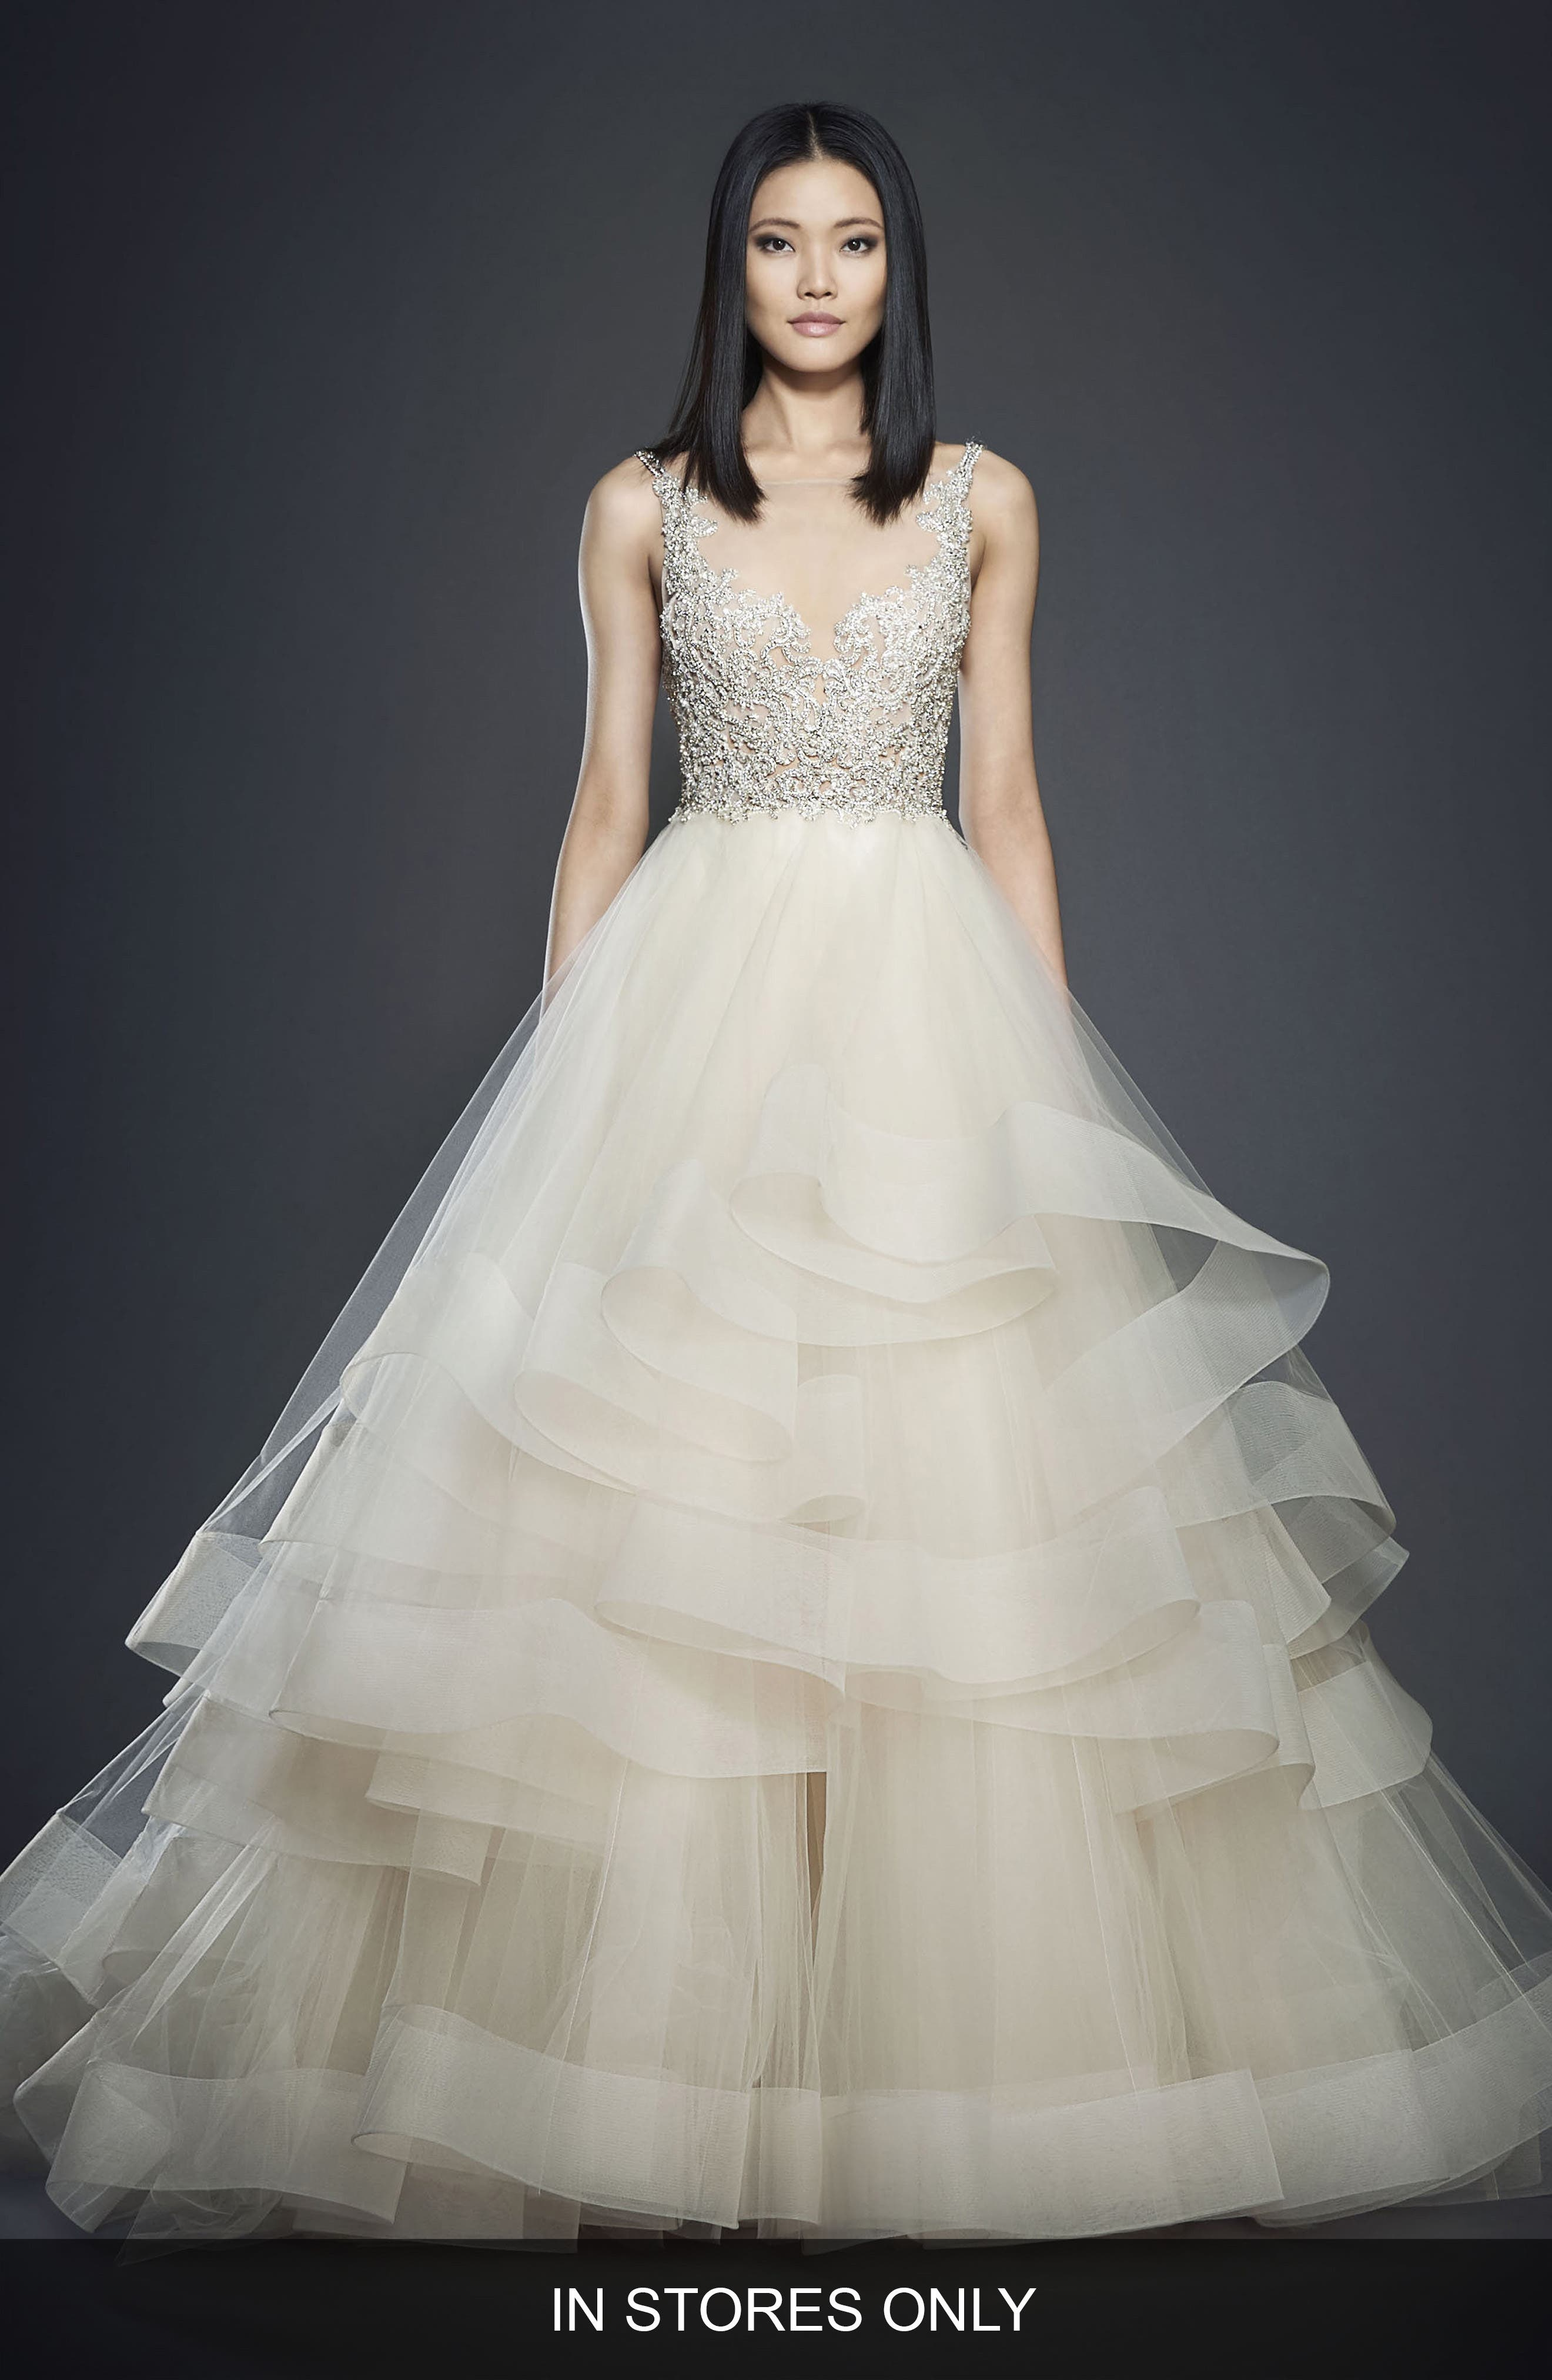 Crystal Embellished Layered Organza Ballgown,                             Alternate thumbnail 2, color,                             Champagne